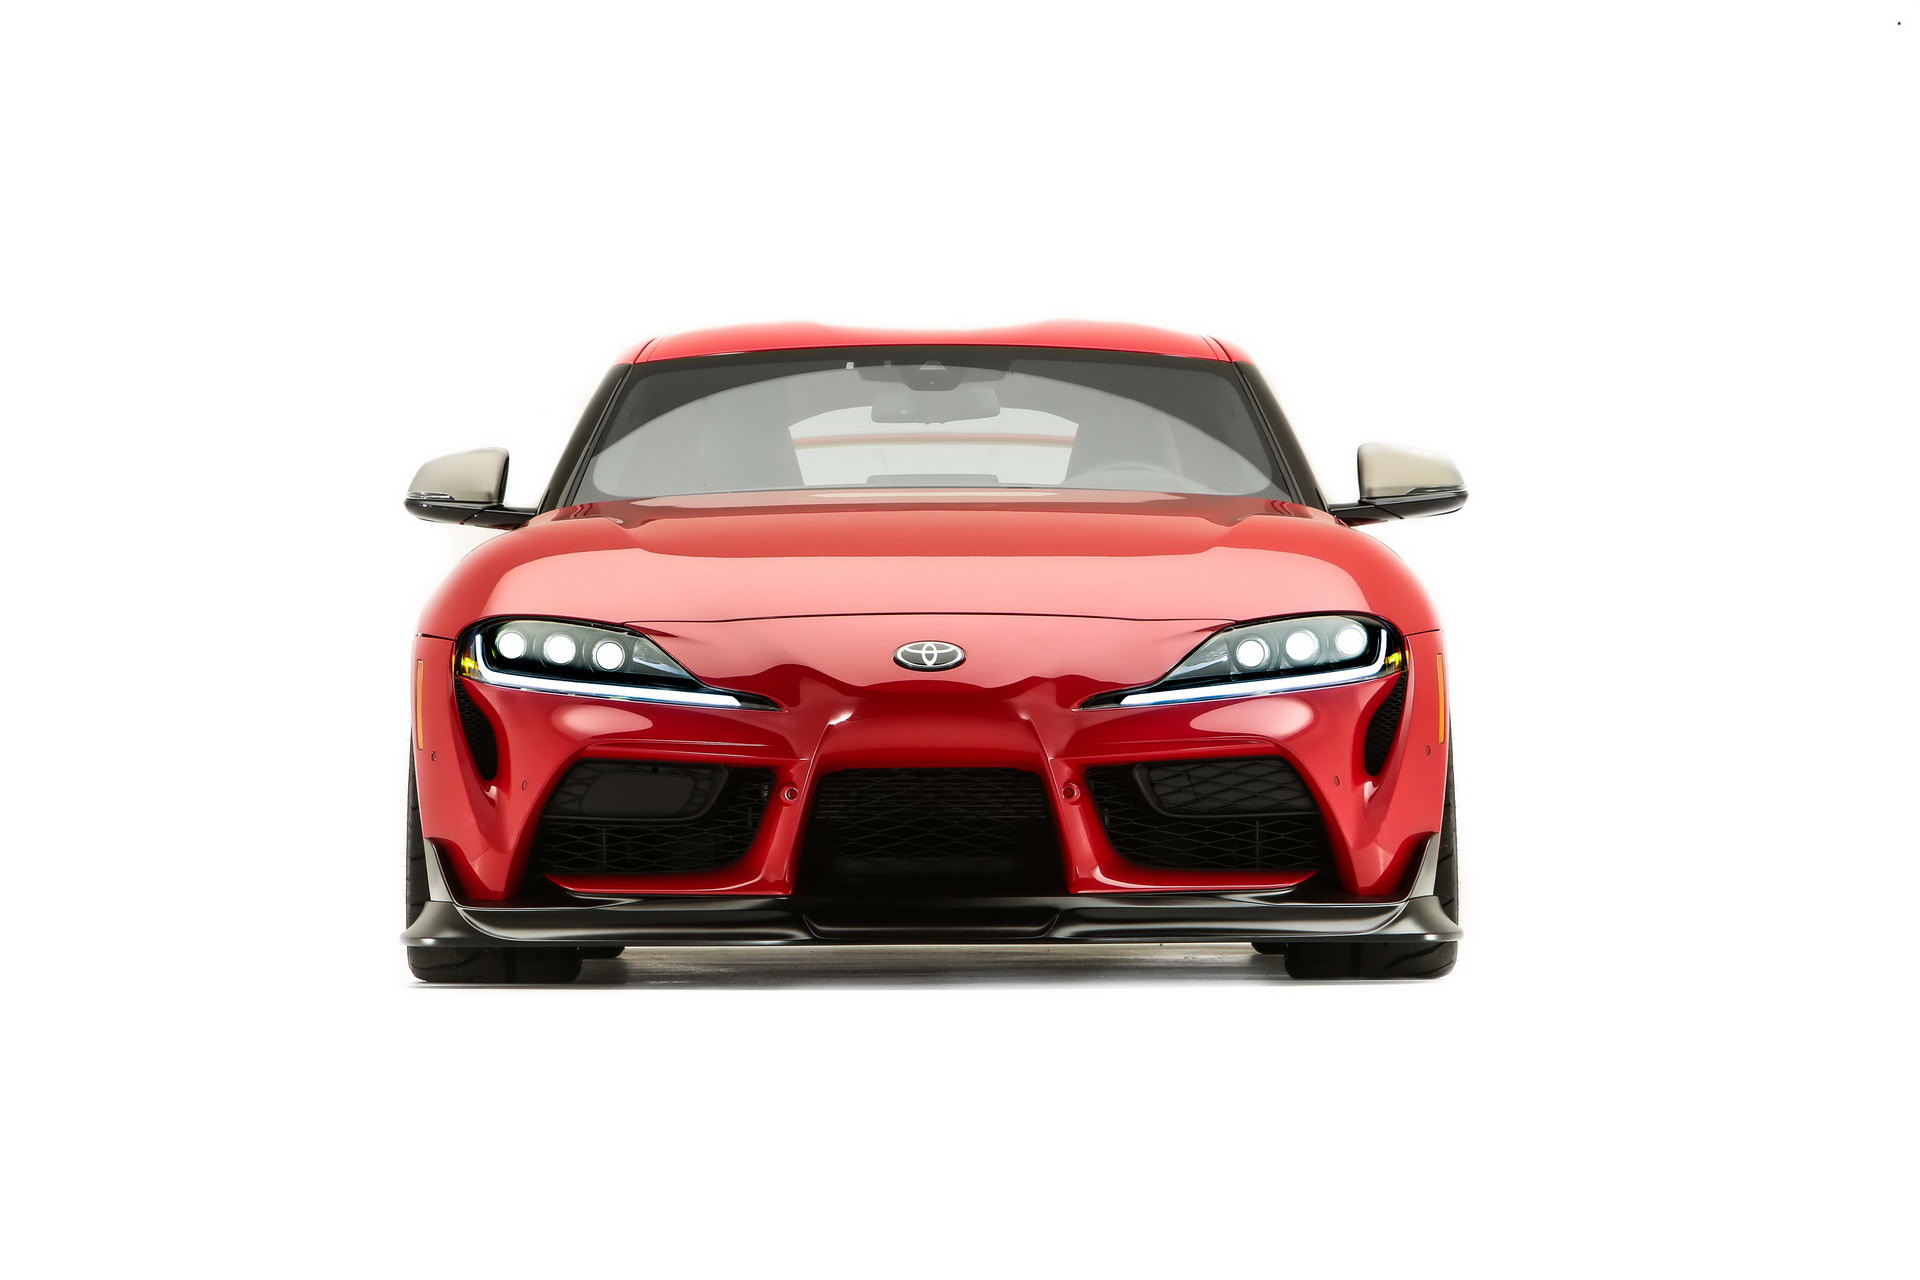 Toyota GR Supra Sport Heritage Edition front view / Toyota GR Supra Sport Heritage Edition red